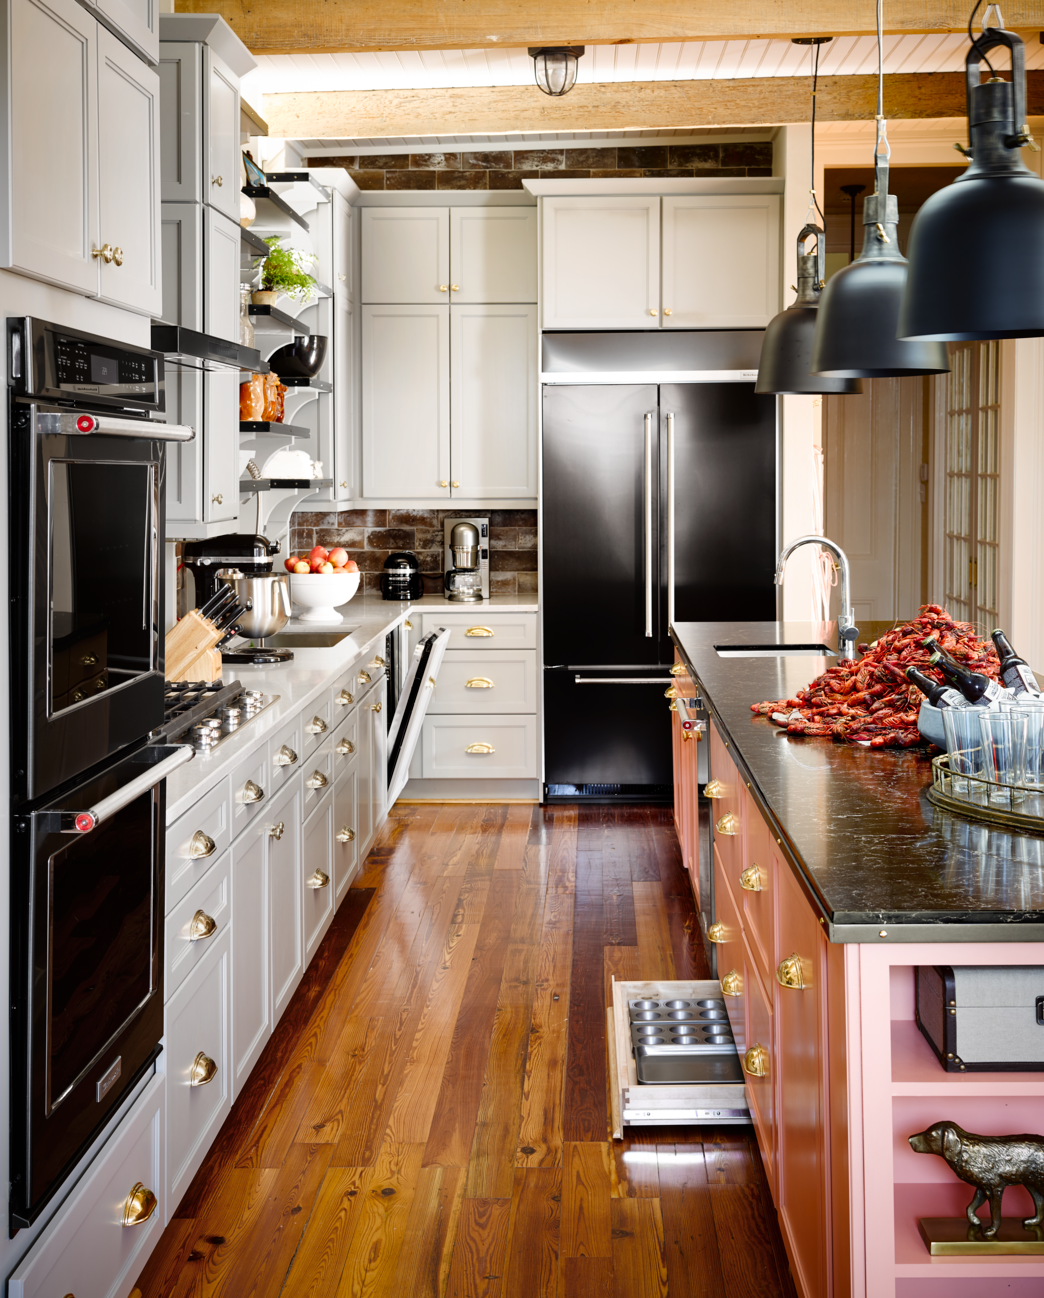 Which Fridge Style Is Right For You?